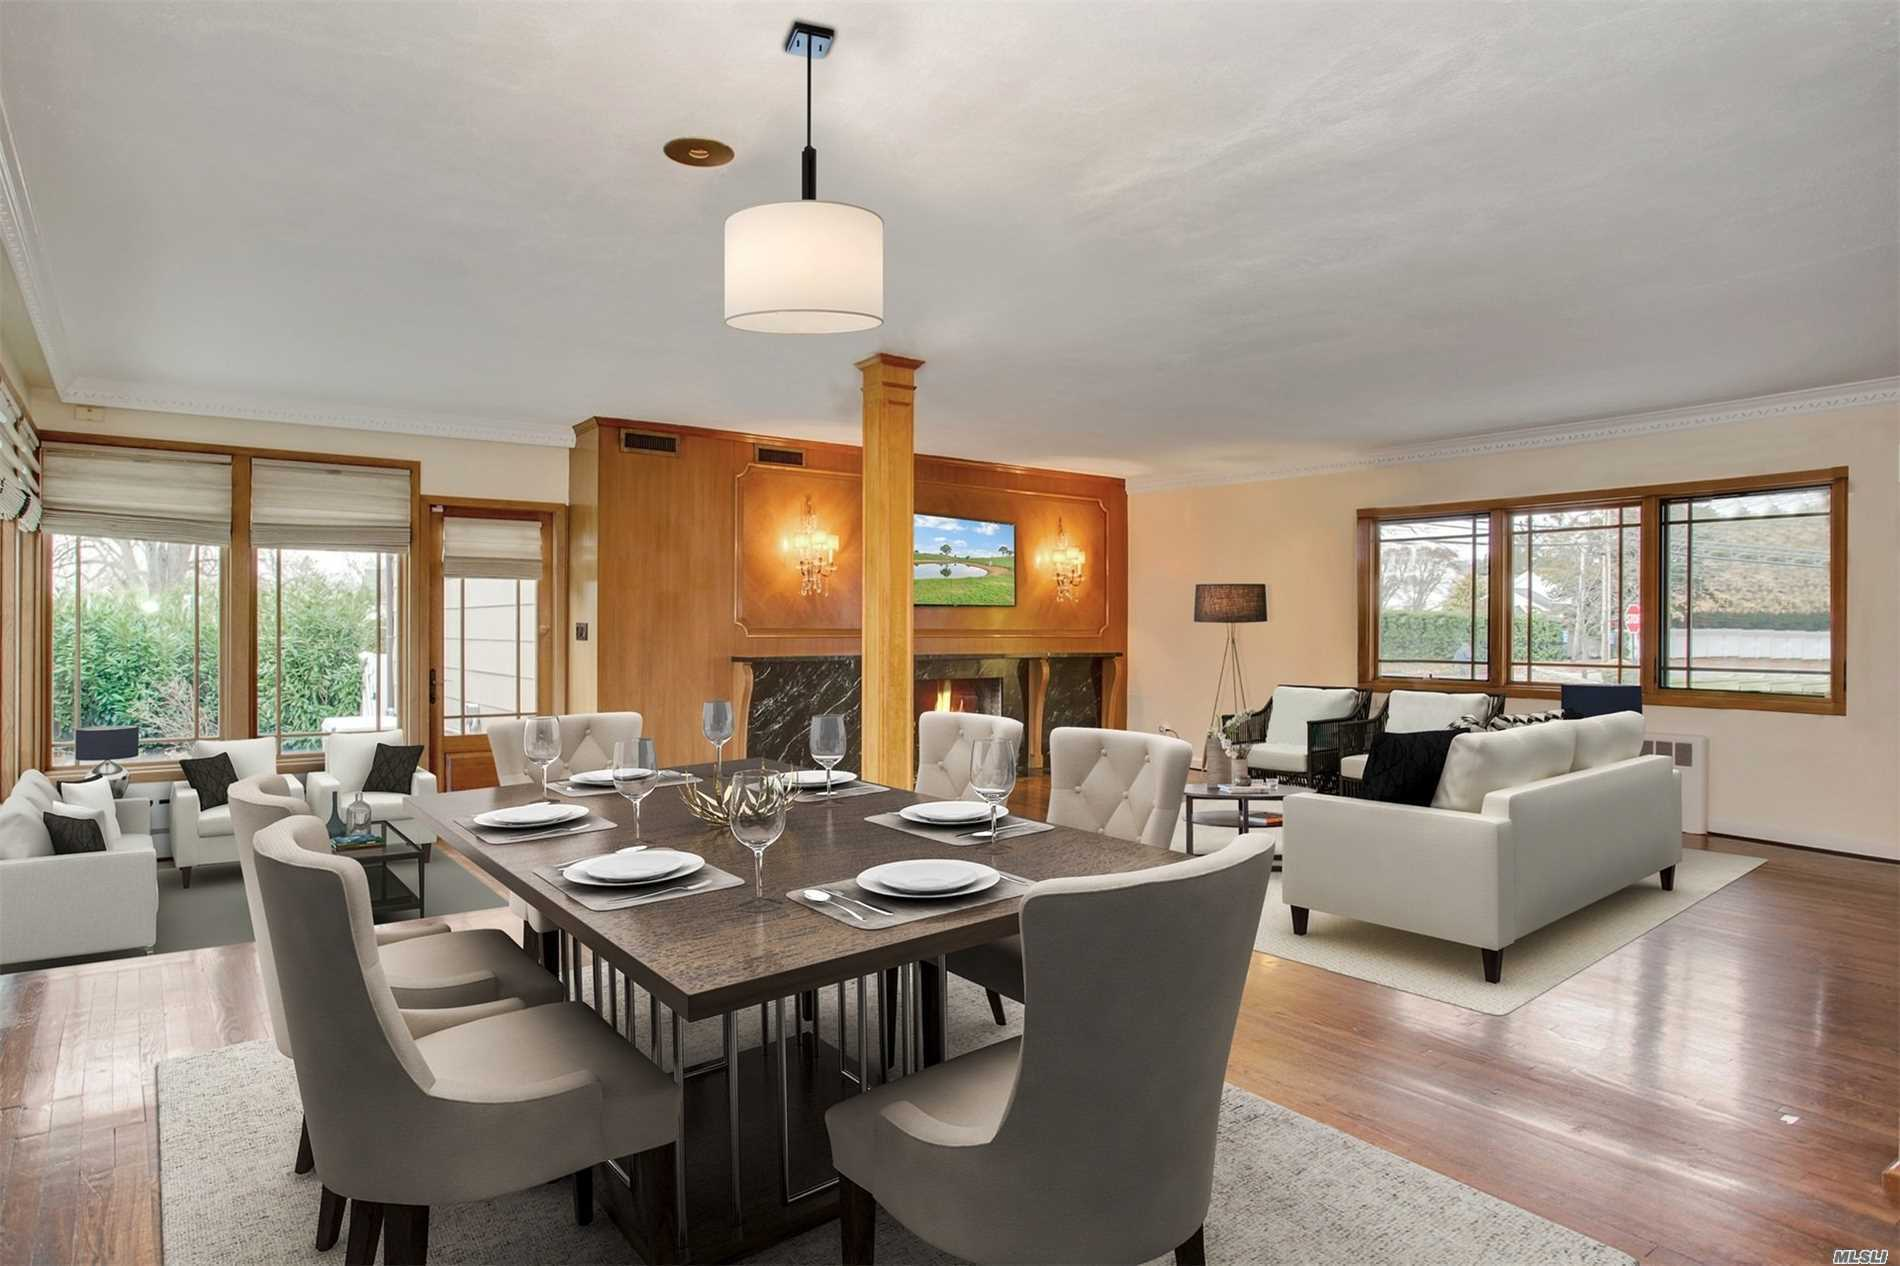 In Strathmore. Expanded Ranch Open Concept Kitchen, Lr, Dr, With Wood Burning Fpl. En Suite Master On 1st Fl, Total 5 Br's, 4 Updated Baths. Special Features Incl. New Kitchen, W/Quartz Counter Tops, New Backsplash, Sub-Zero Refrig, Gas Stove, New Wood Grain Tile Flr. Other Features: Laundry On1st Fl. Include Igs, Alarm, Fin. Bsmt., Ductless Cac Wall Units, Hardie Board Siding, Backup Generator, New Pavers Patio W/Custom Bbq Island Grill & Vinyl Fenced Backyard. Put This One On Your List!